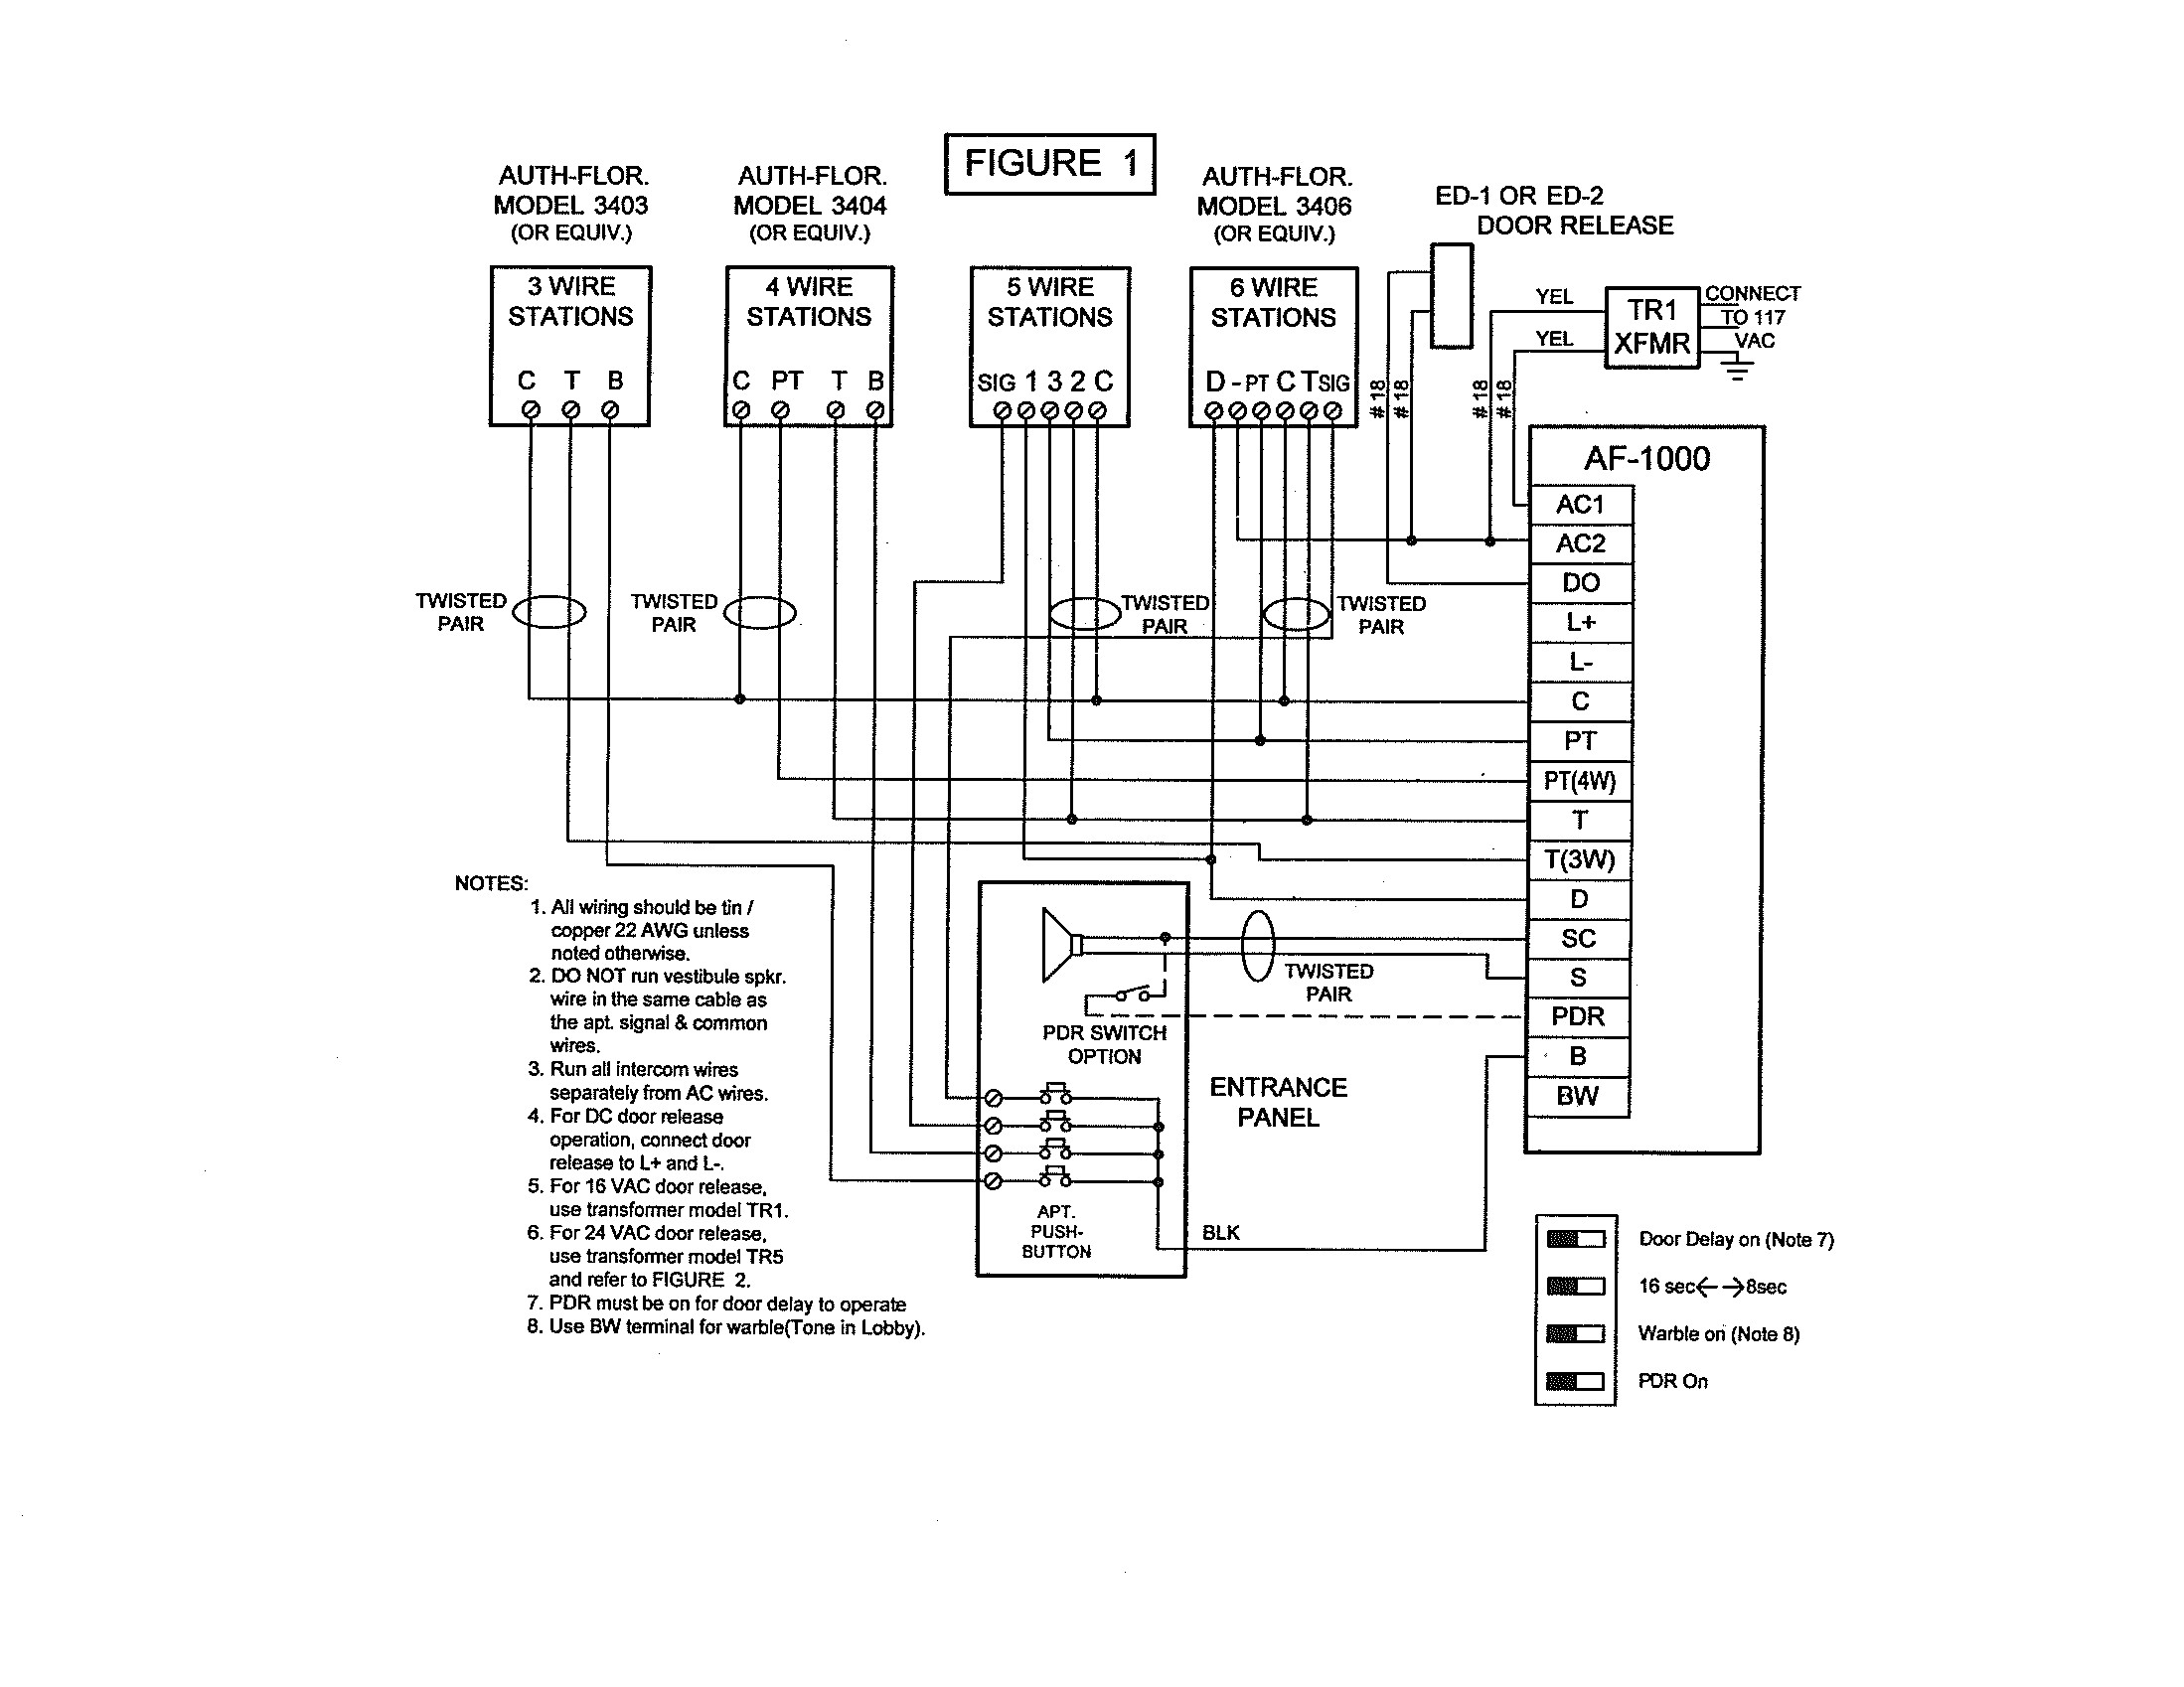 4 wire intercom wiring diagram Collection-Pacific Electronics 3404 4 Wire Plastic Inter Station Prepossessing Wiring Diagram 19-i